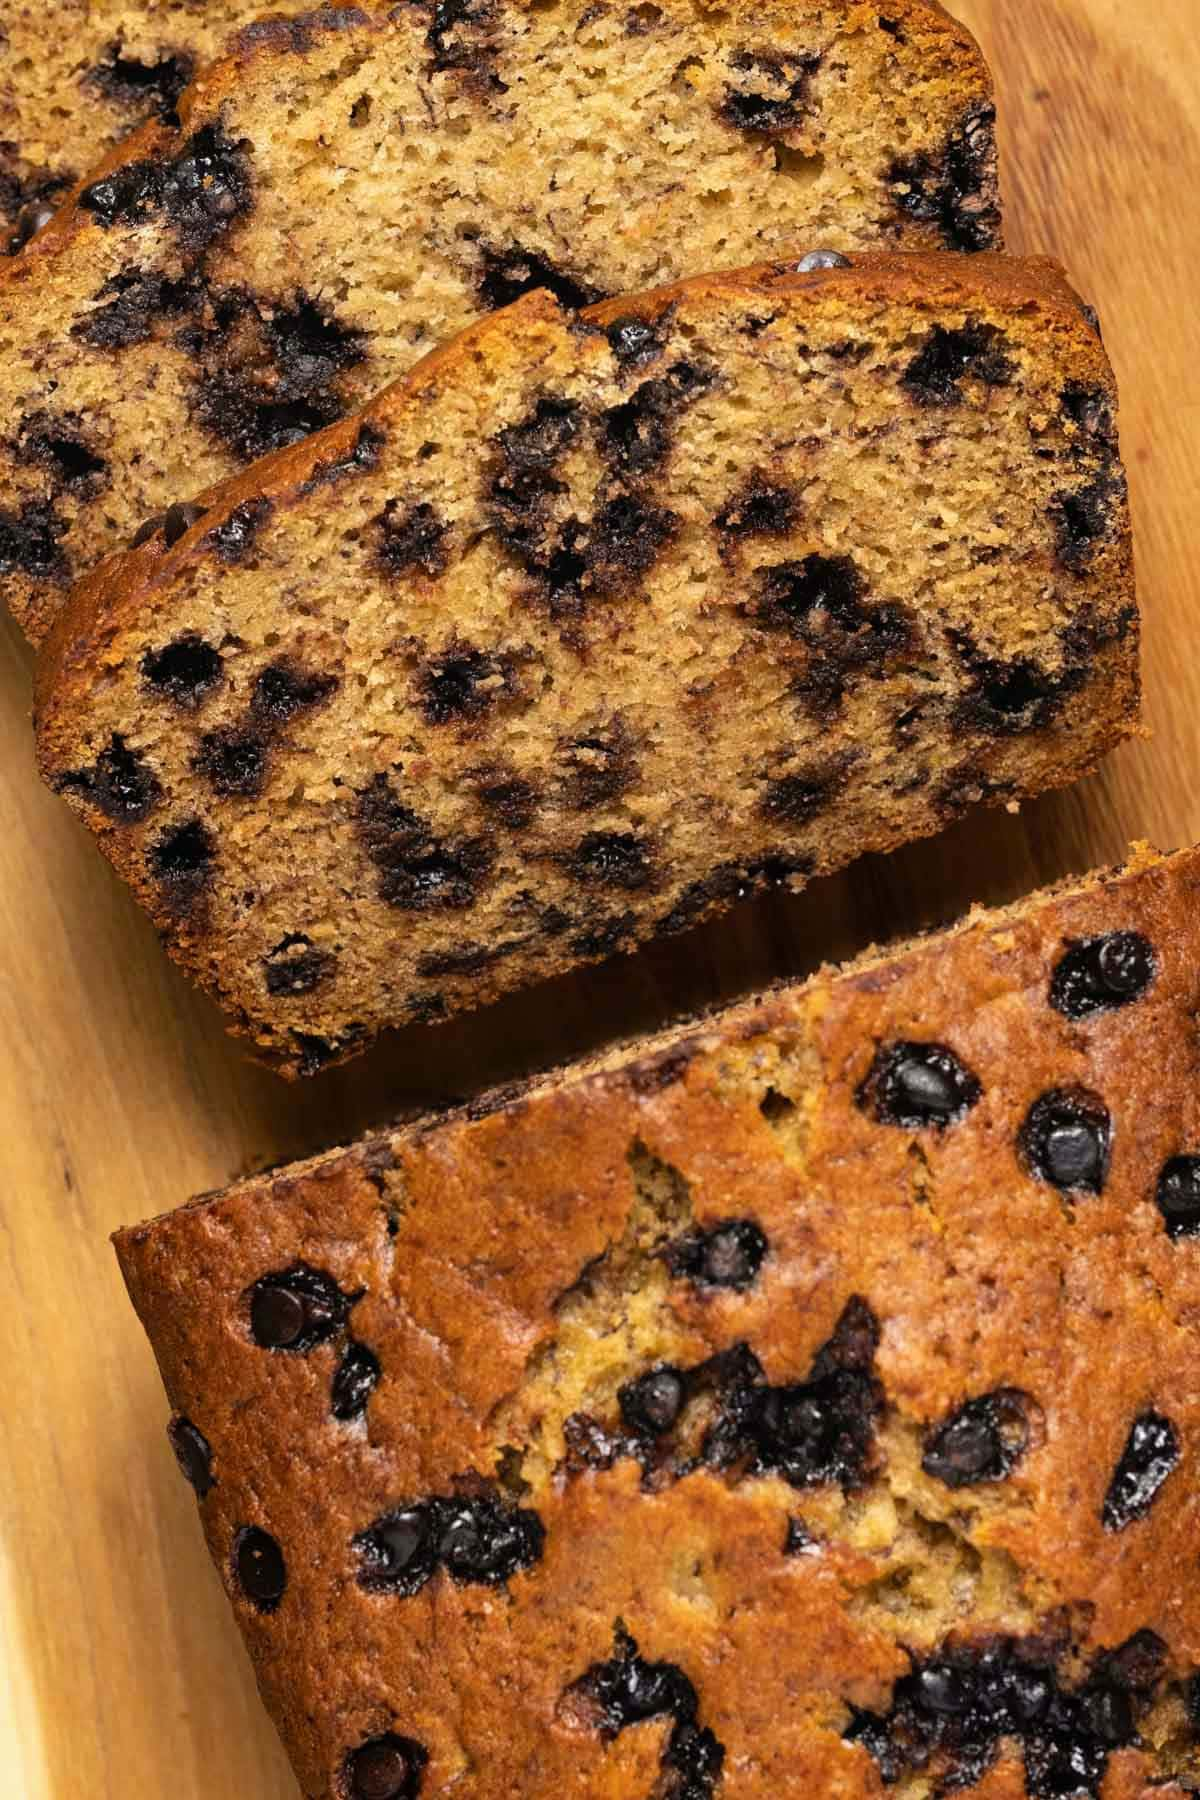 Chocolate chip banana bread with slices cut on a wooden board.